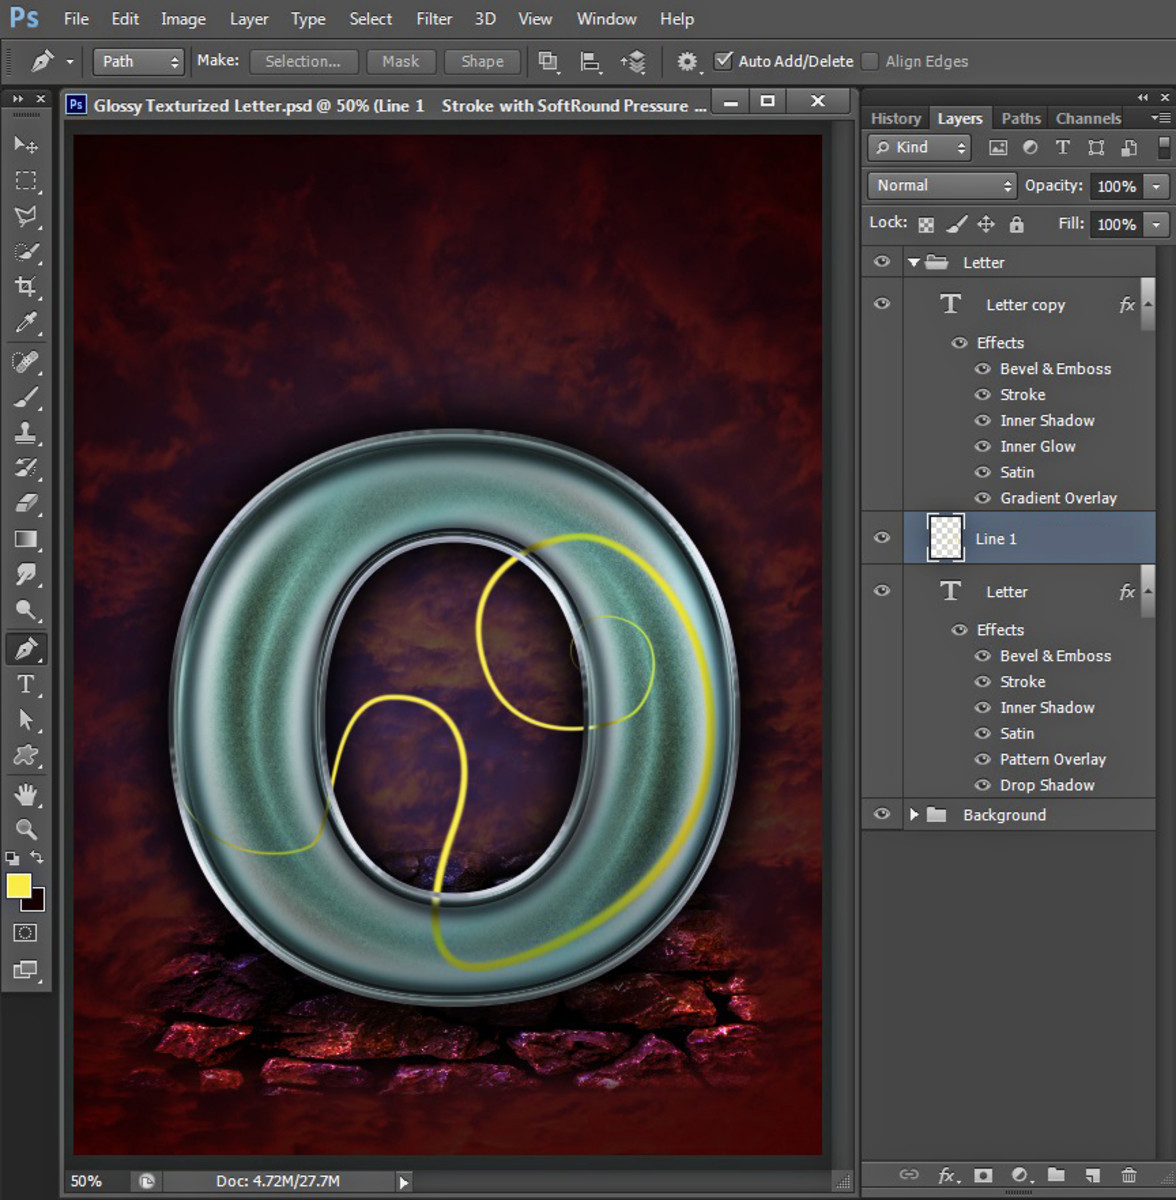 create-glossy-texturized-letter-in-photoshop